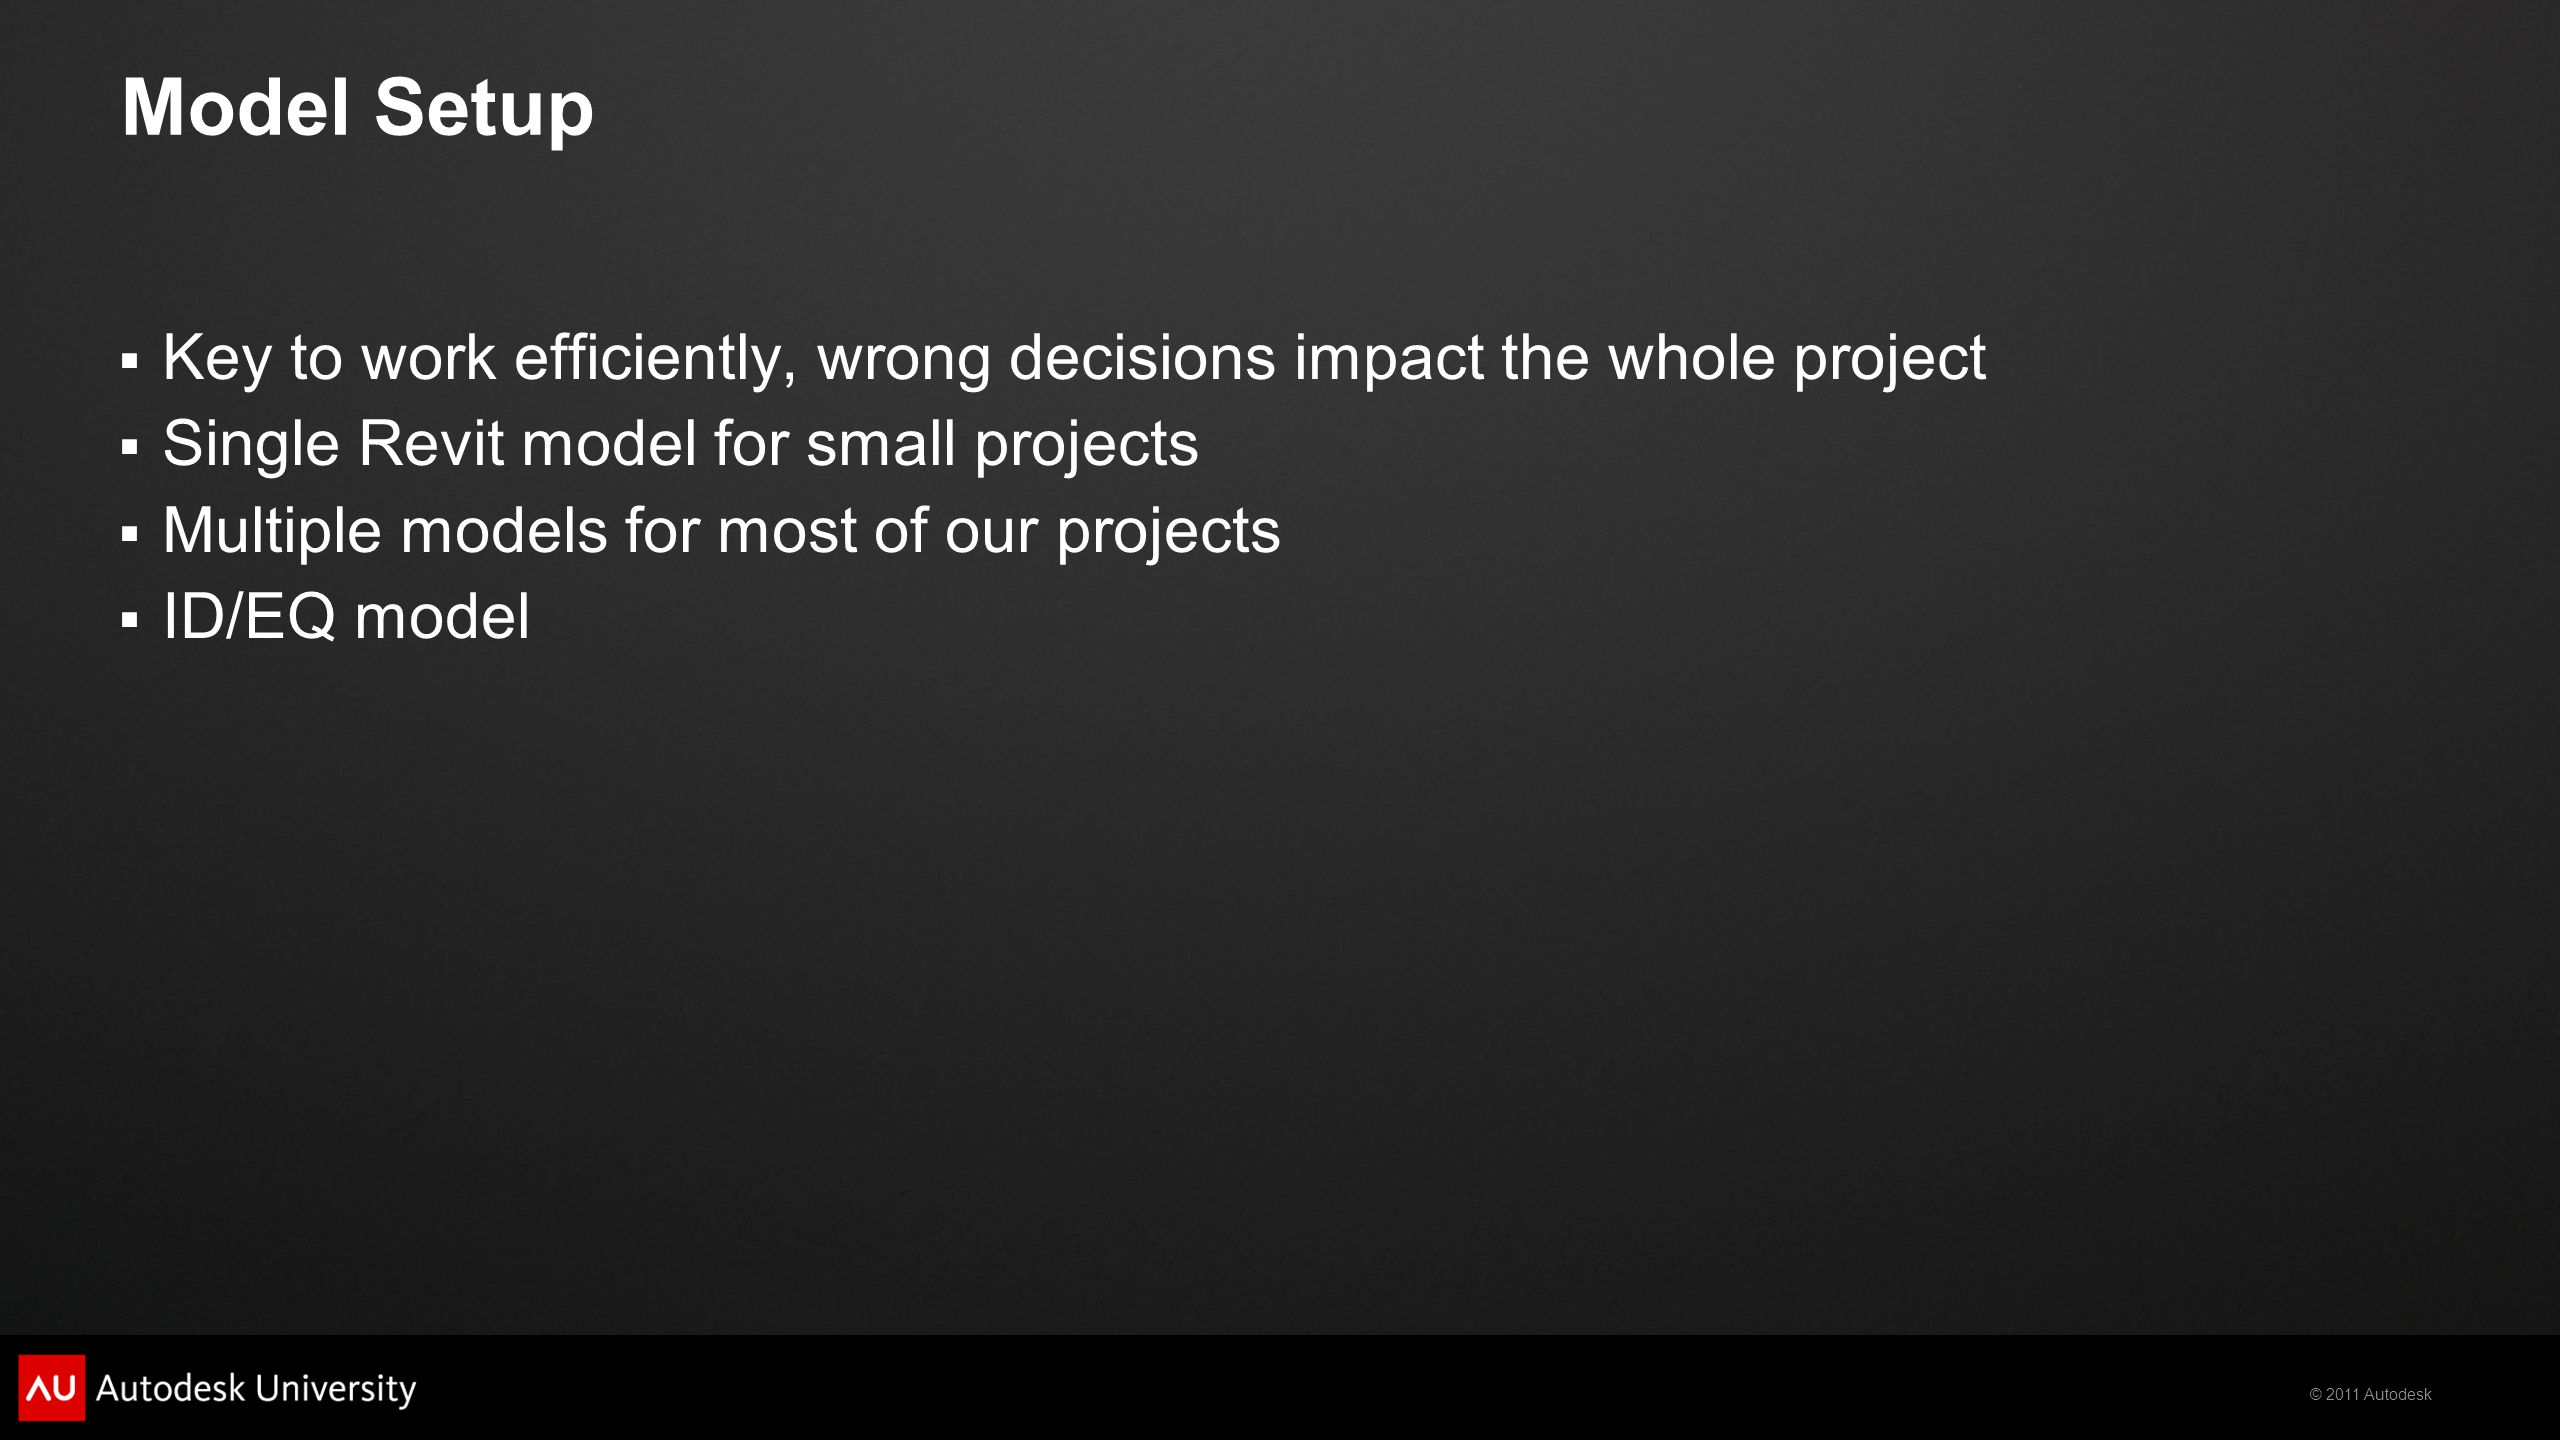 Model Setup Key to work efficiently, wrong decisions impact the whole project. Single Revit model for small projects.